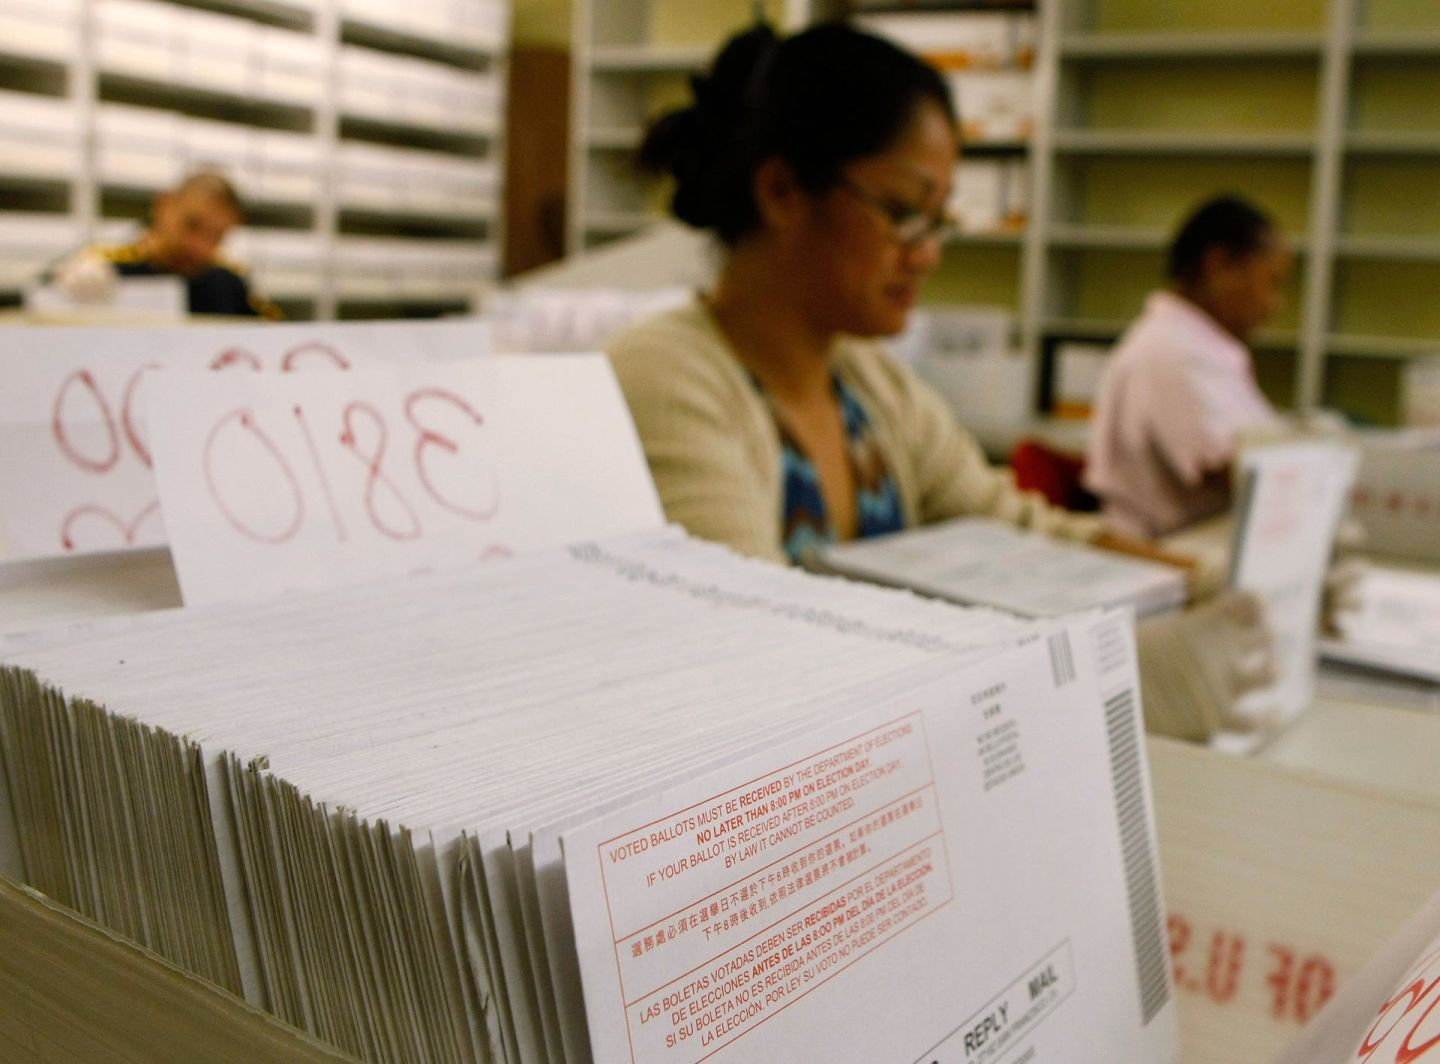 Workers at the San Francisco Department of Elections sort stacks of vote-by-mail ballots.